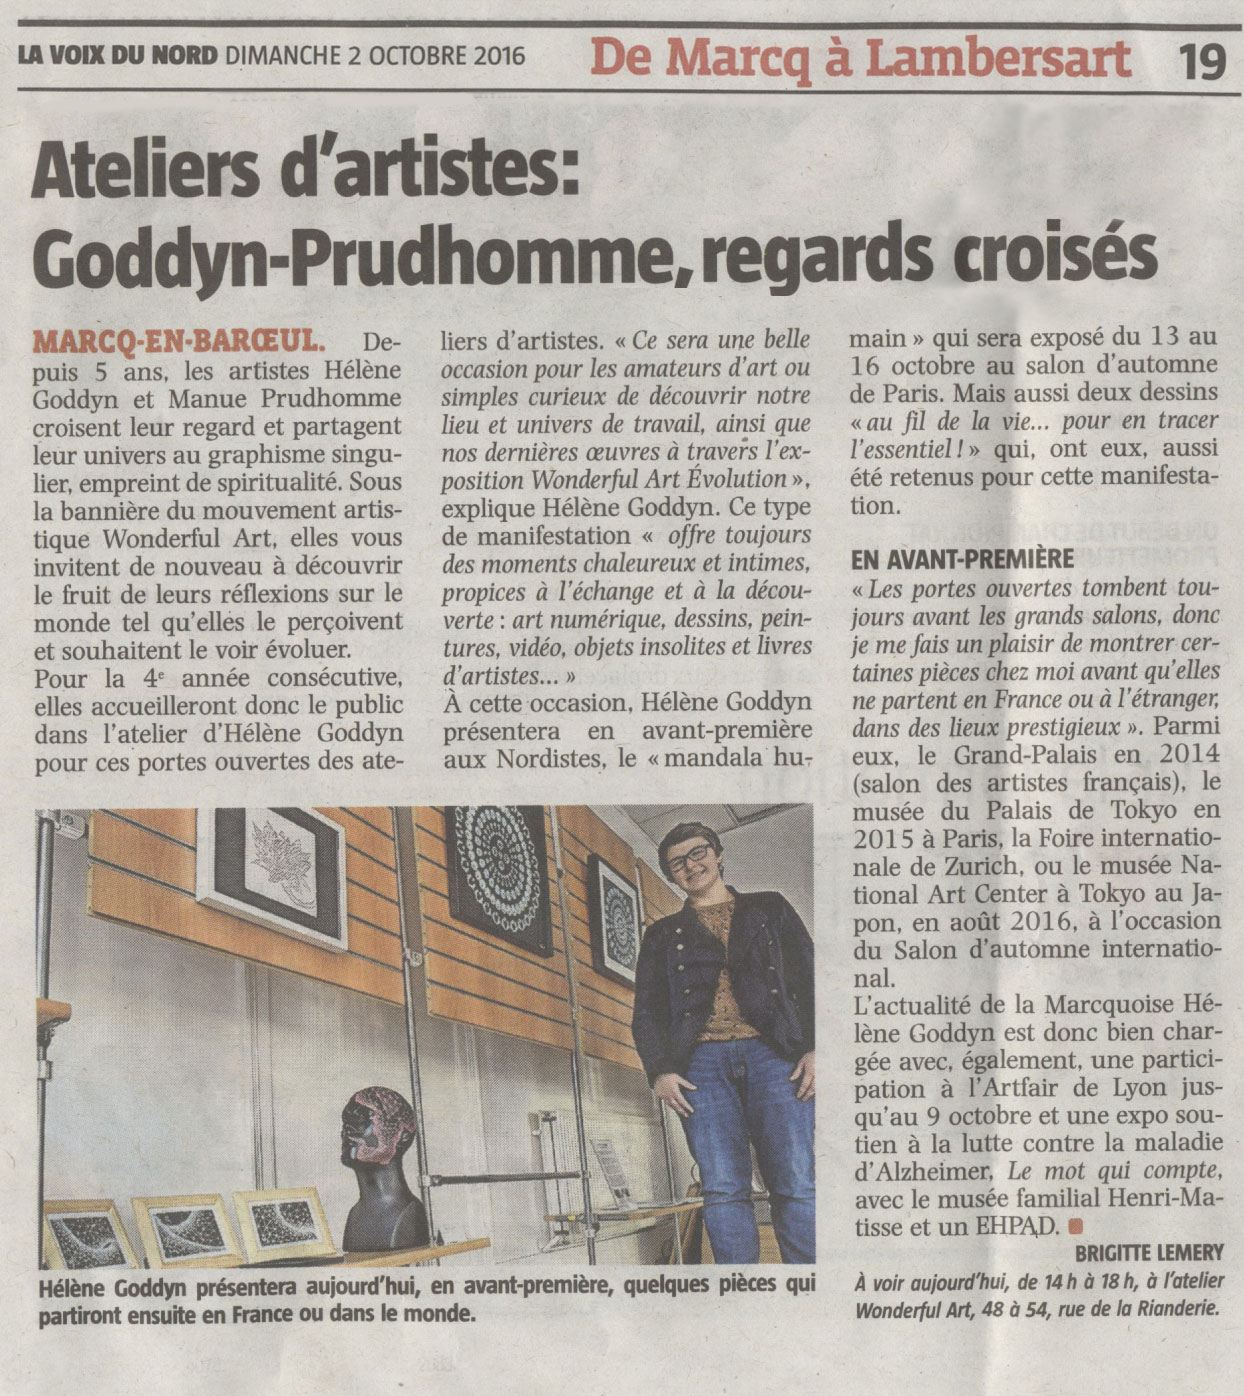 oct-2016_vdn_ateliers-d-artistes-goddyn-prudhomme